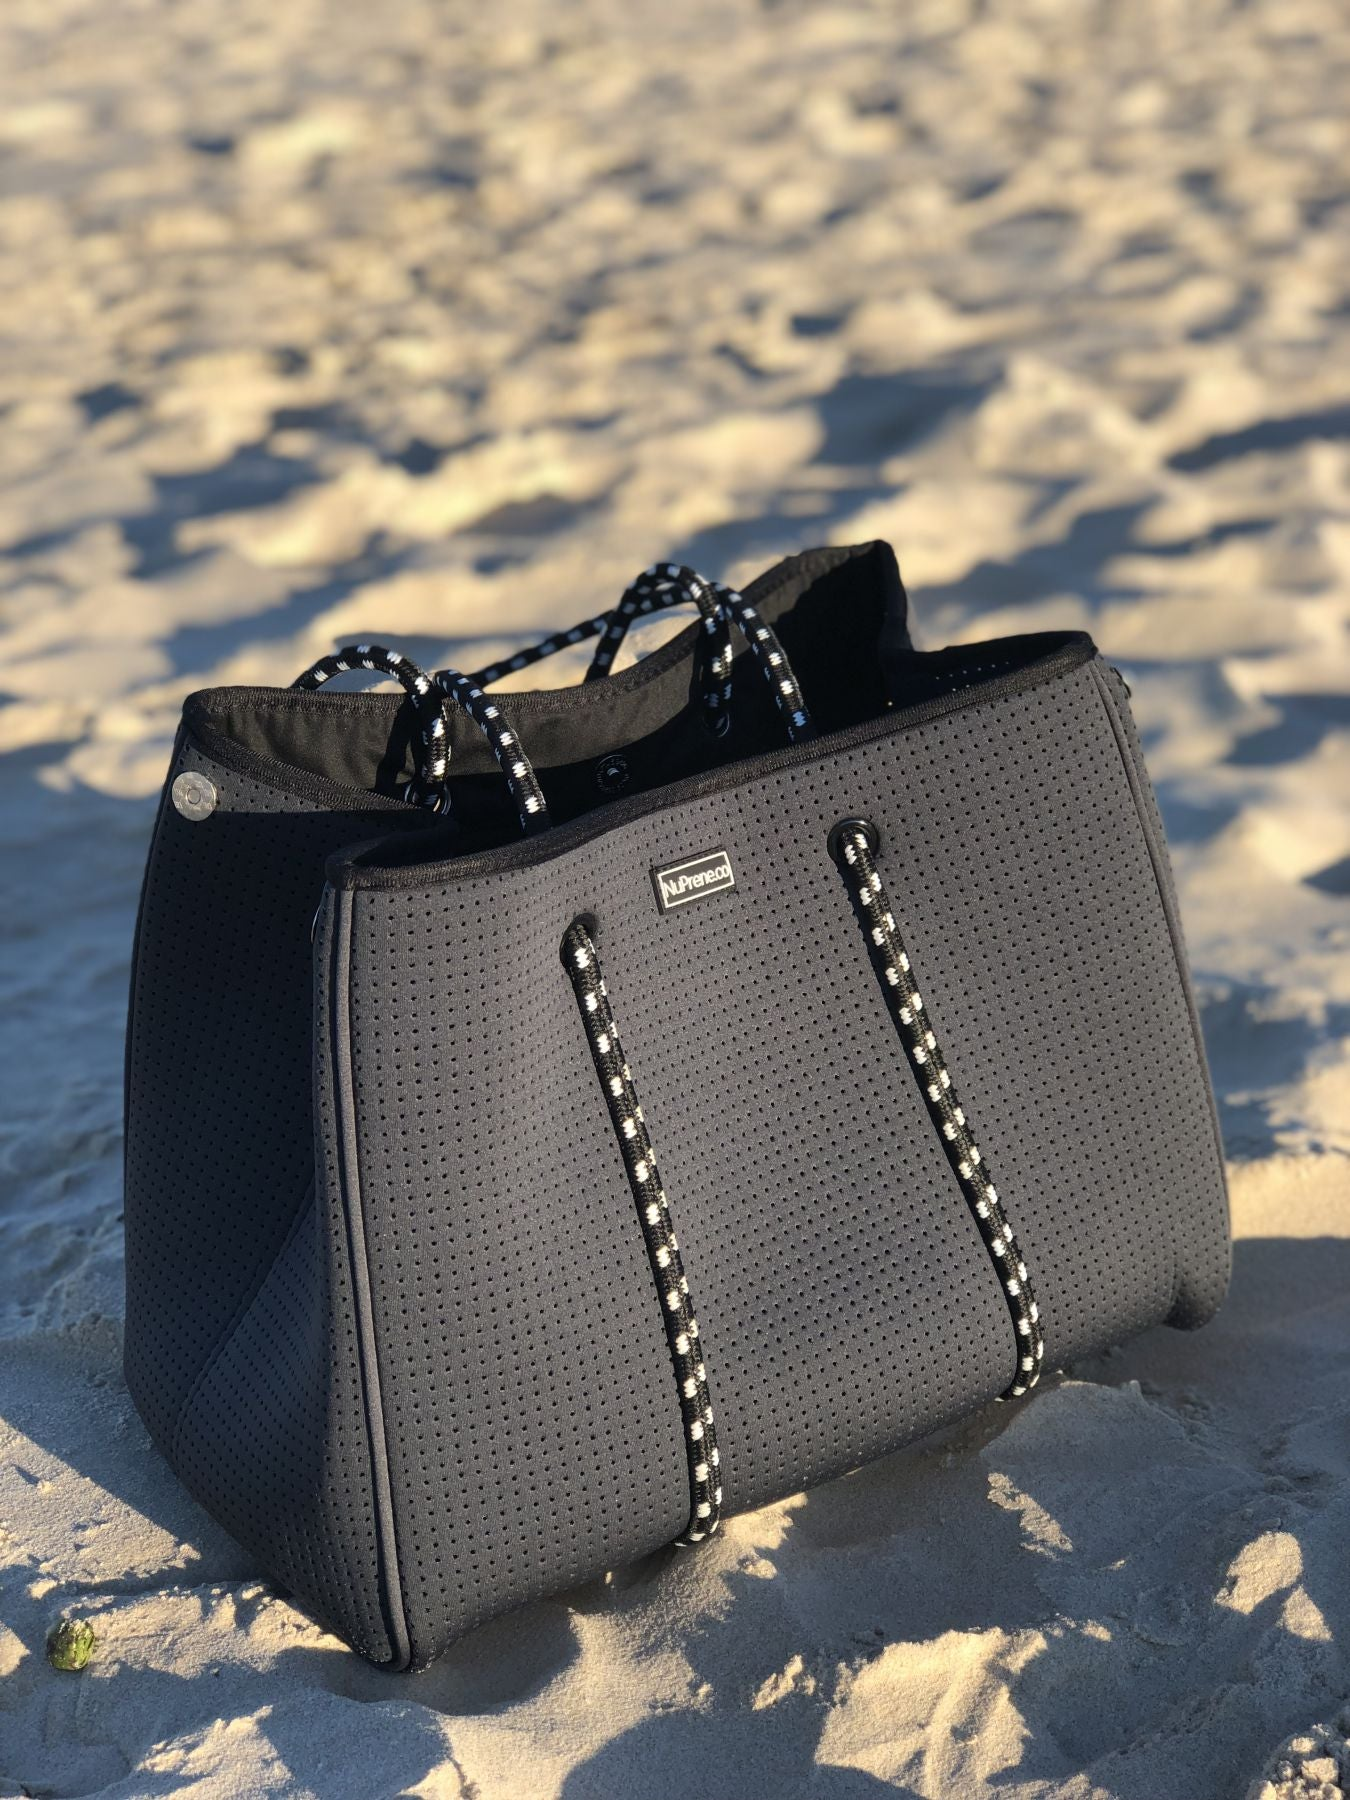 Black Neoprene Tote Bag